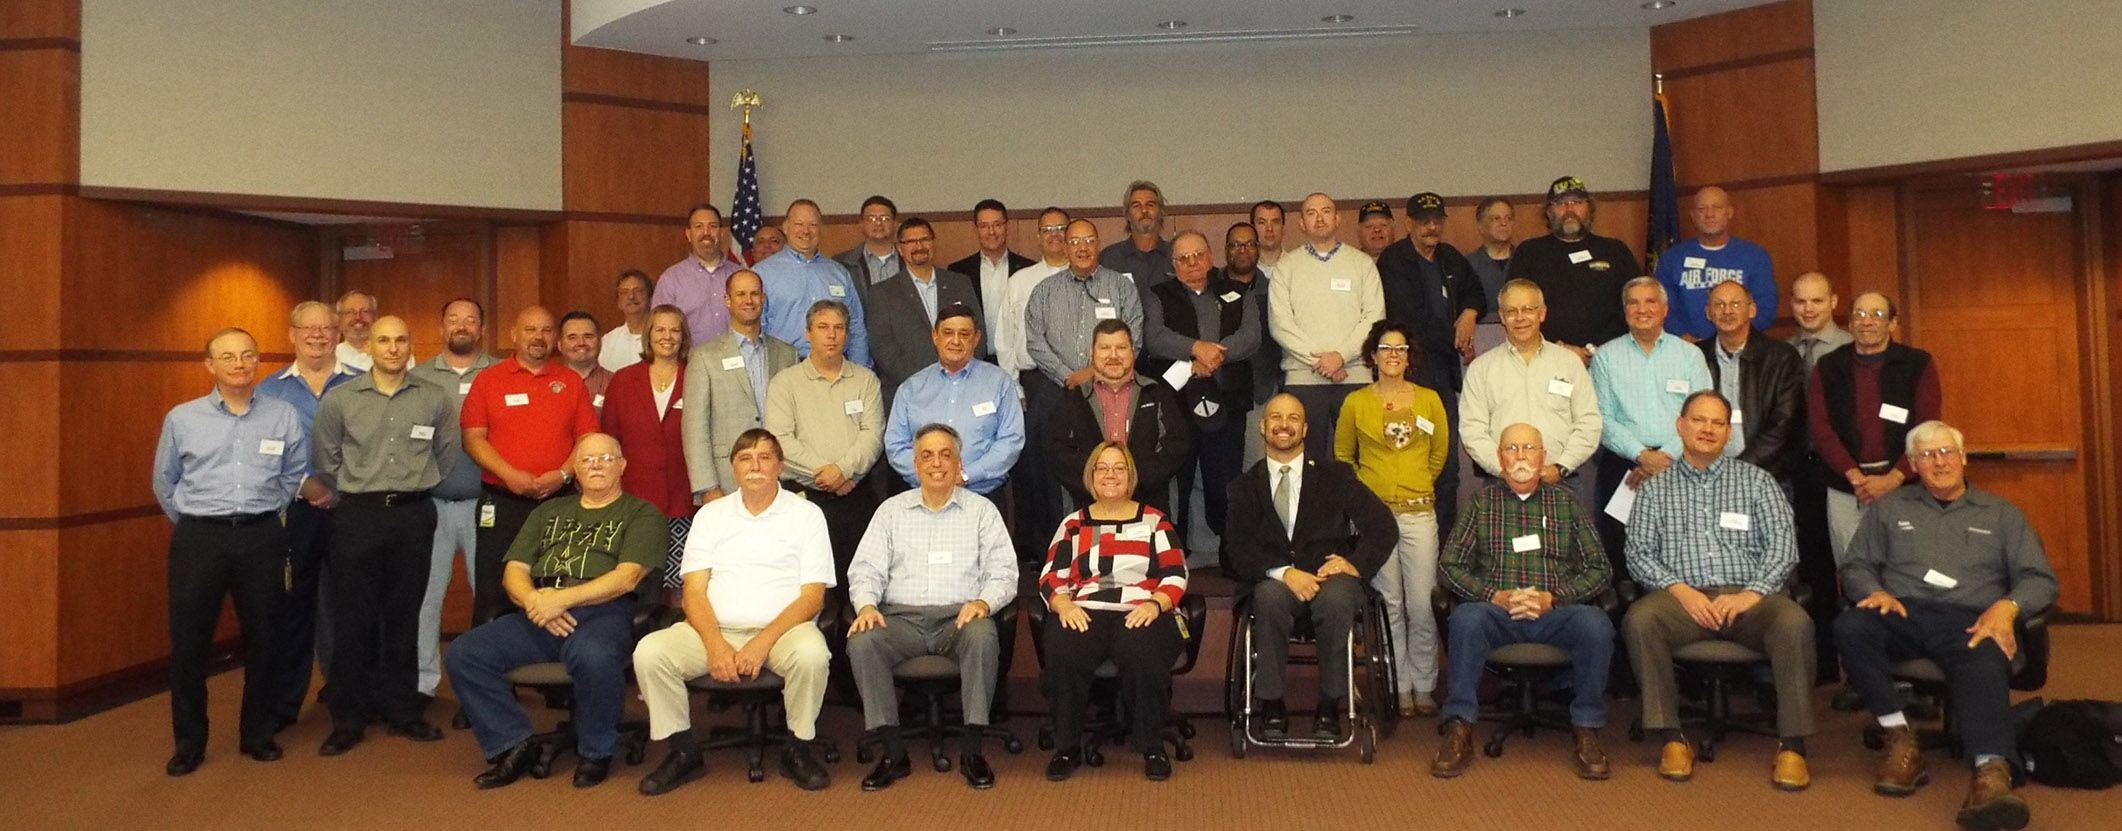 Penske Honors Veterans at Annual Recognition Event